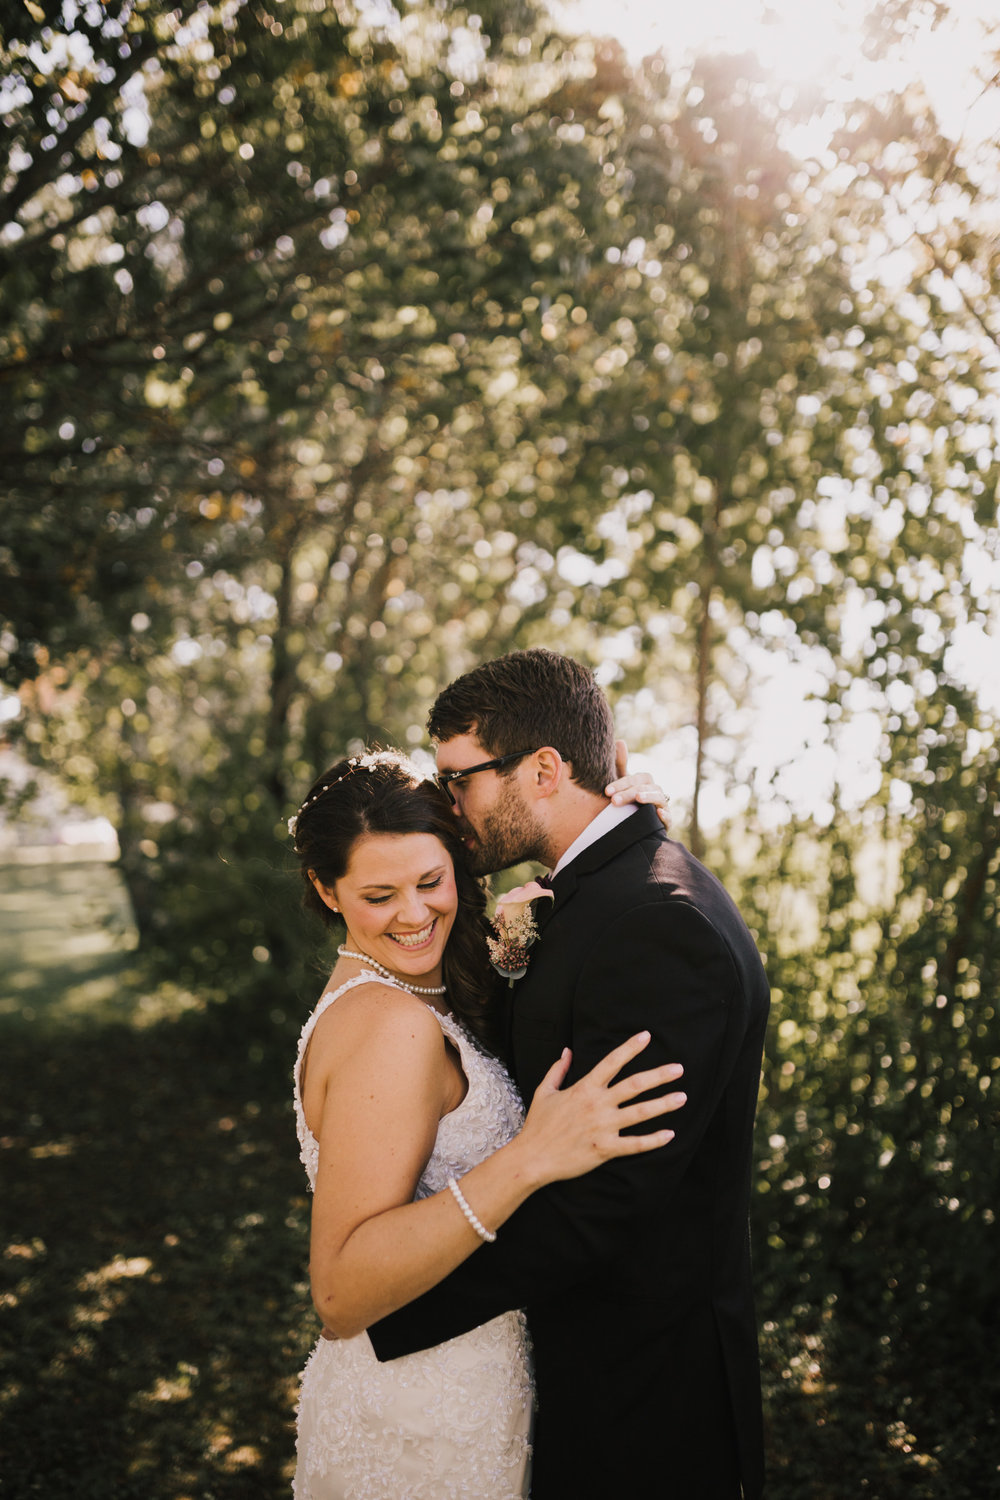 alyssa barletter photography intimate fall autumn wedding rural missouri wedding photographer-25.jpg